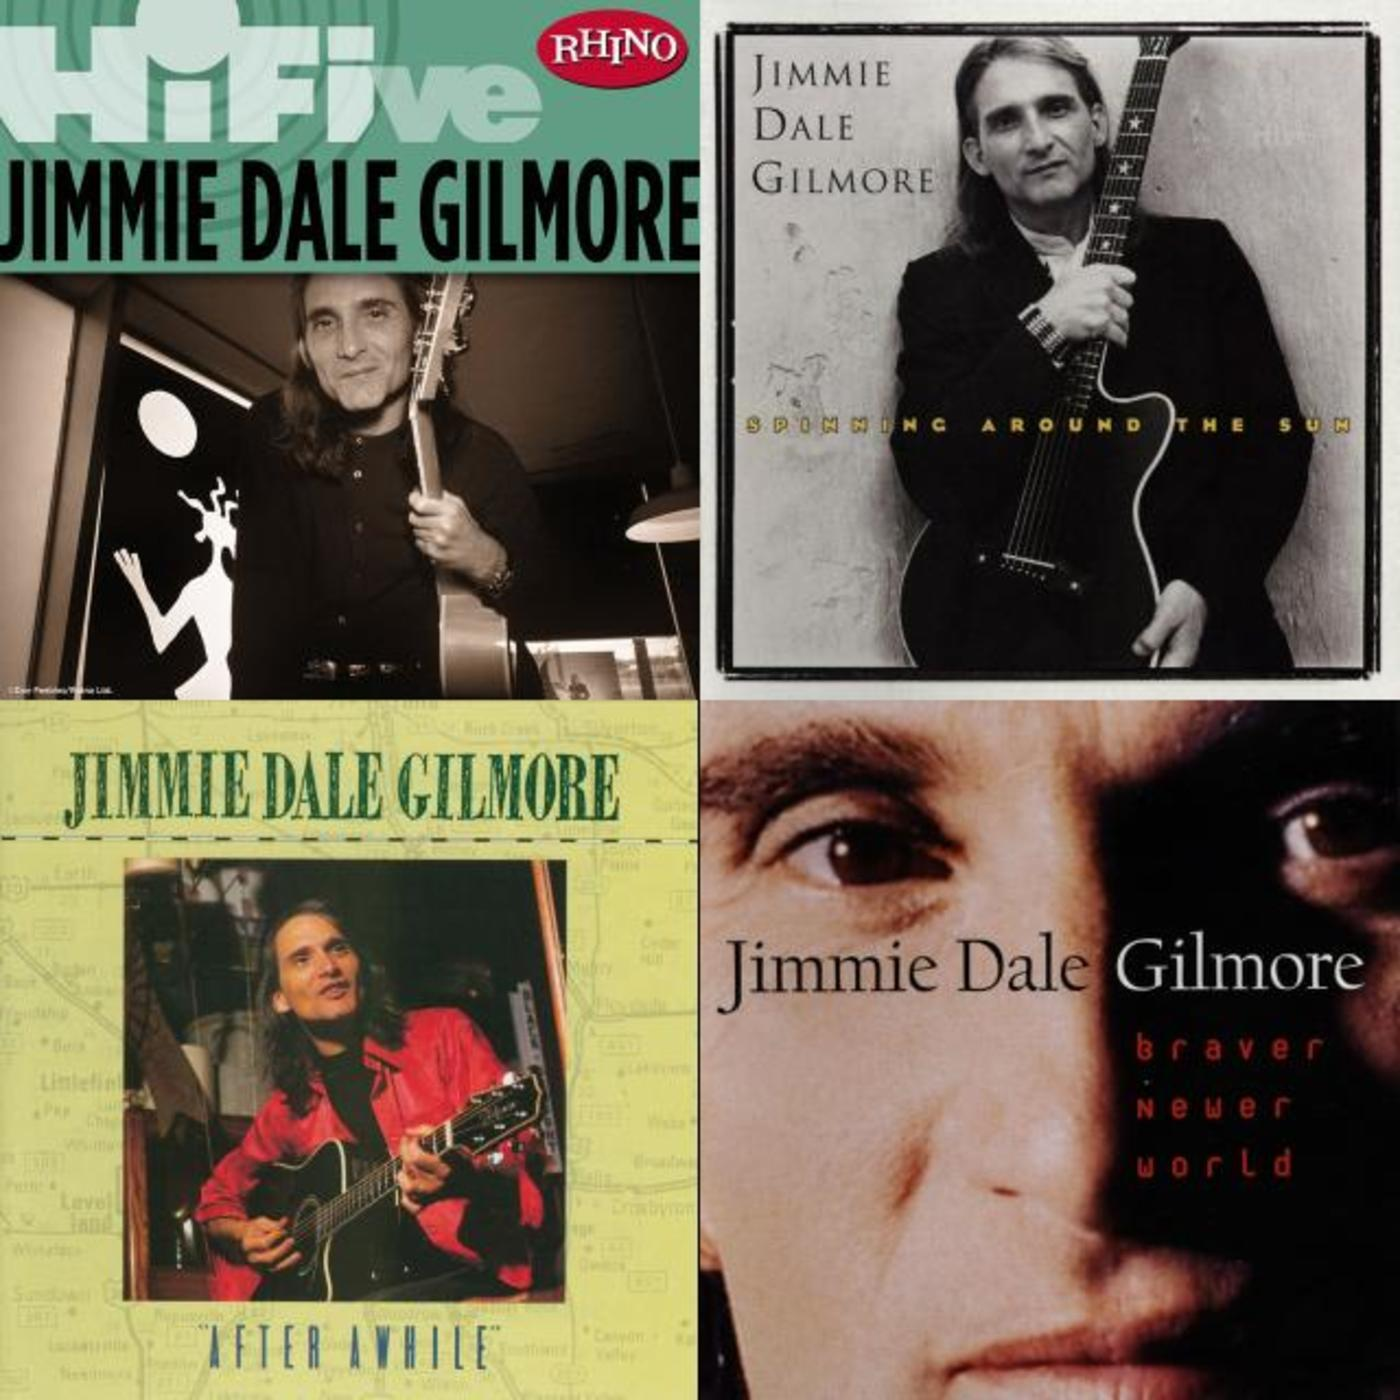 Jimmie Dale Gilmore